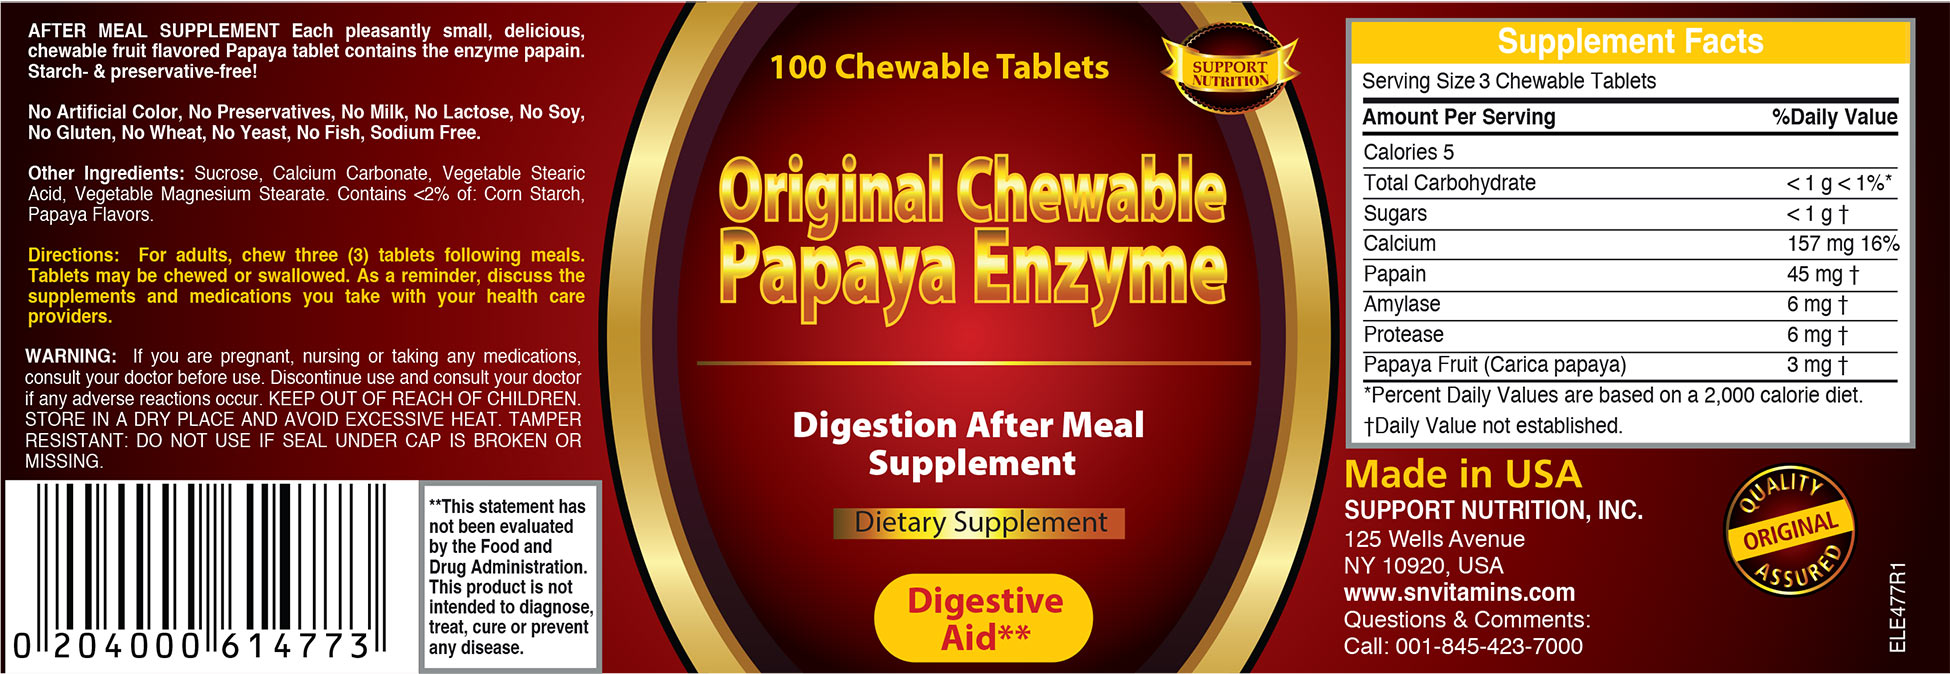 original chewable papaya enzyme